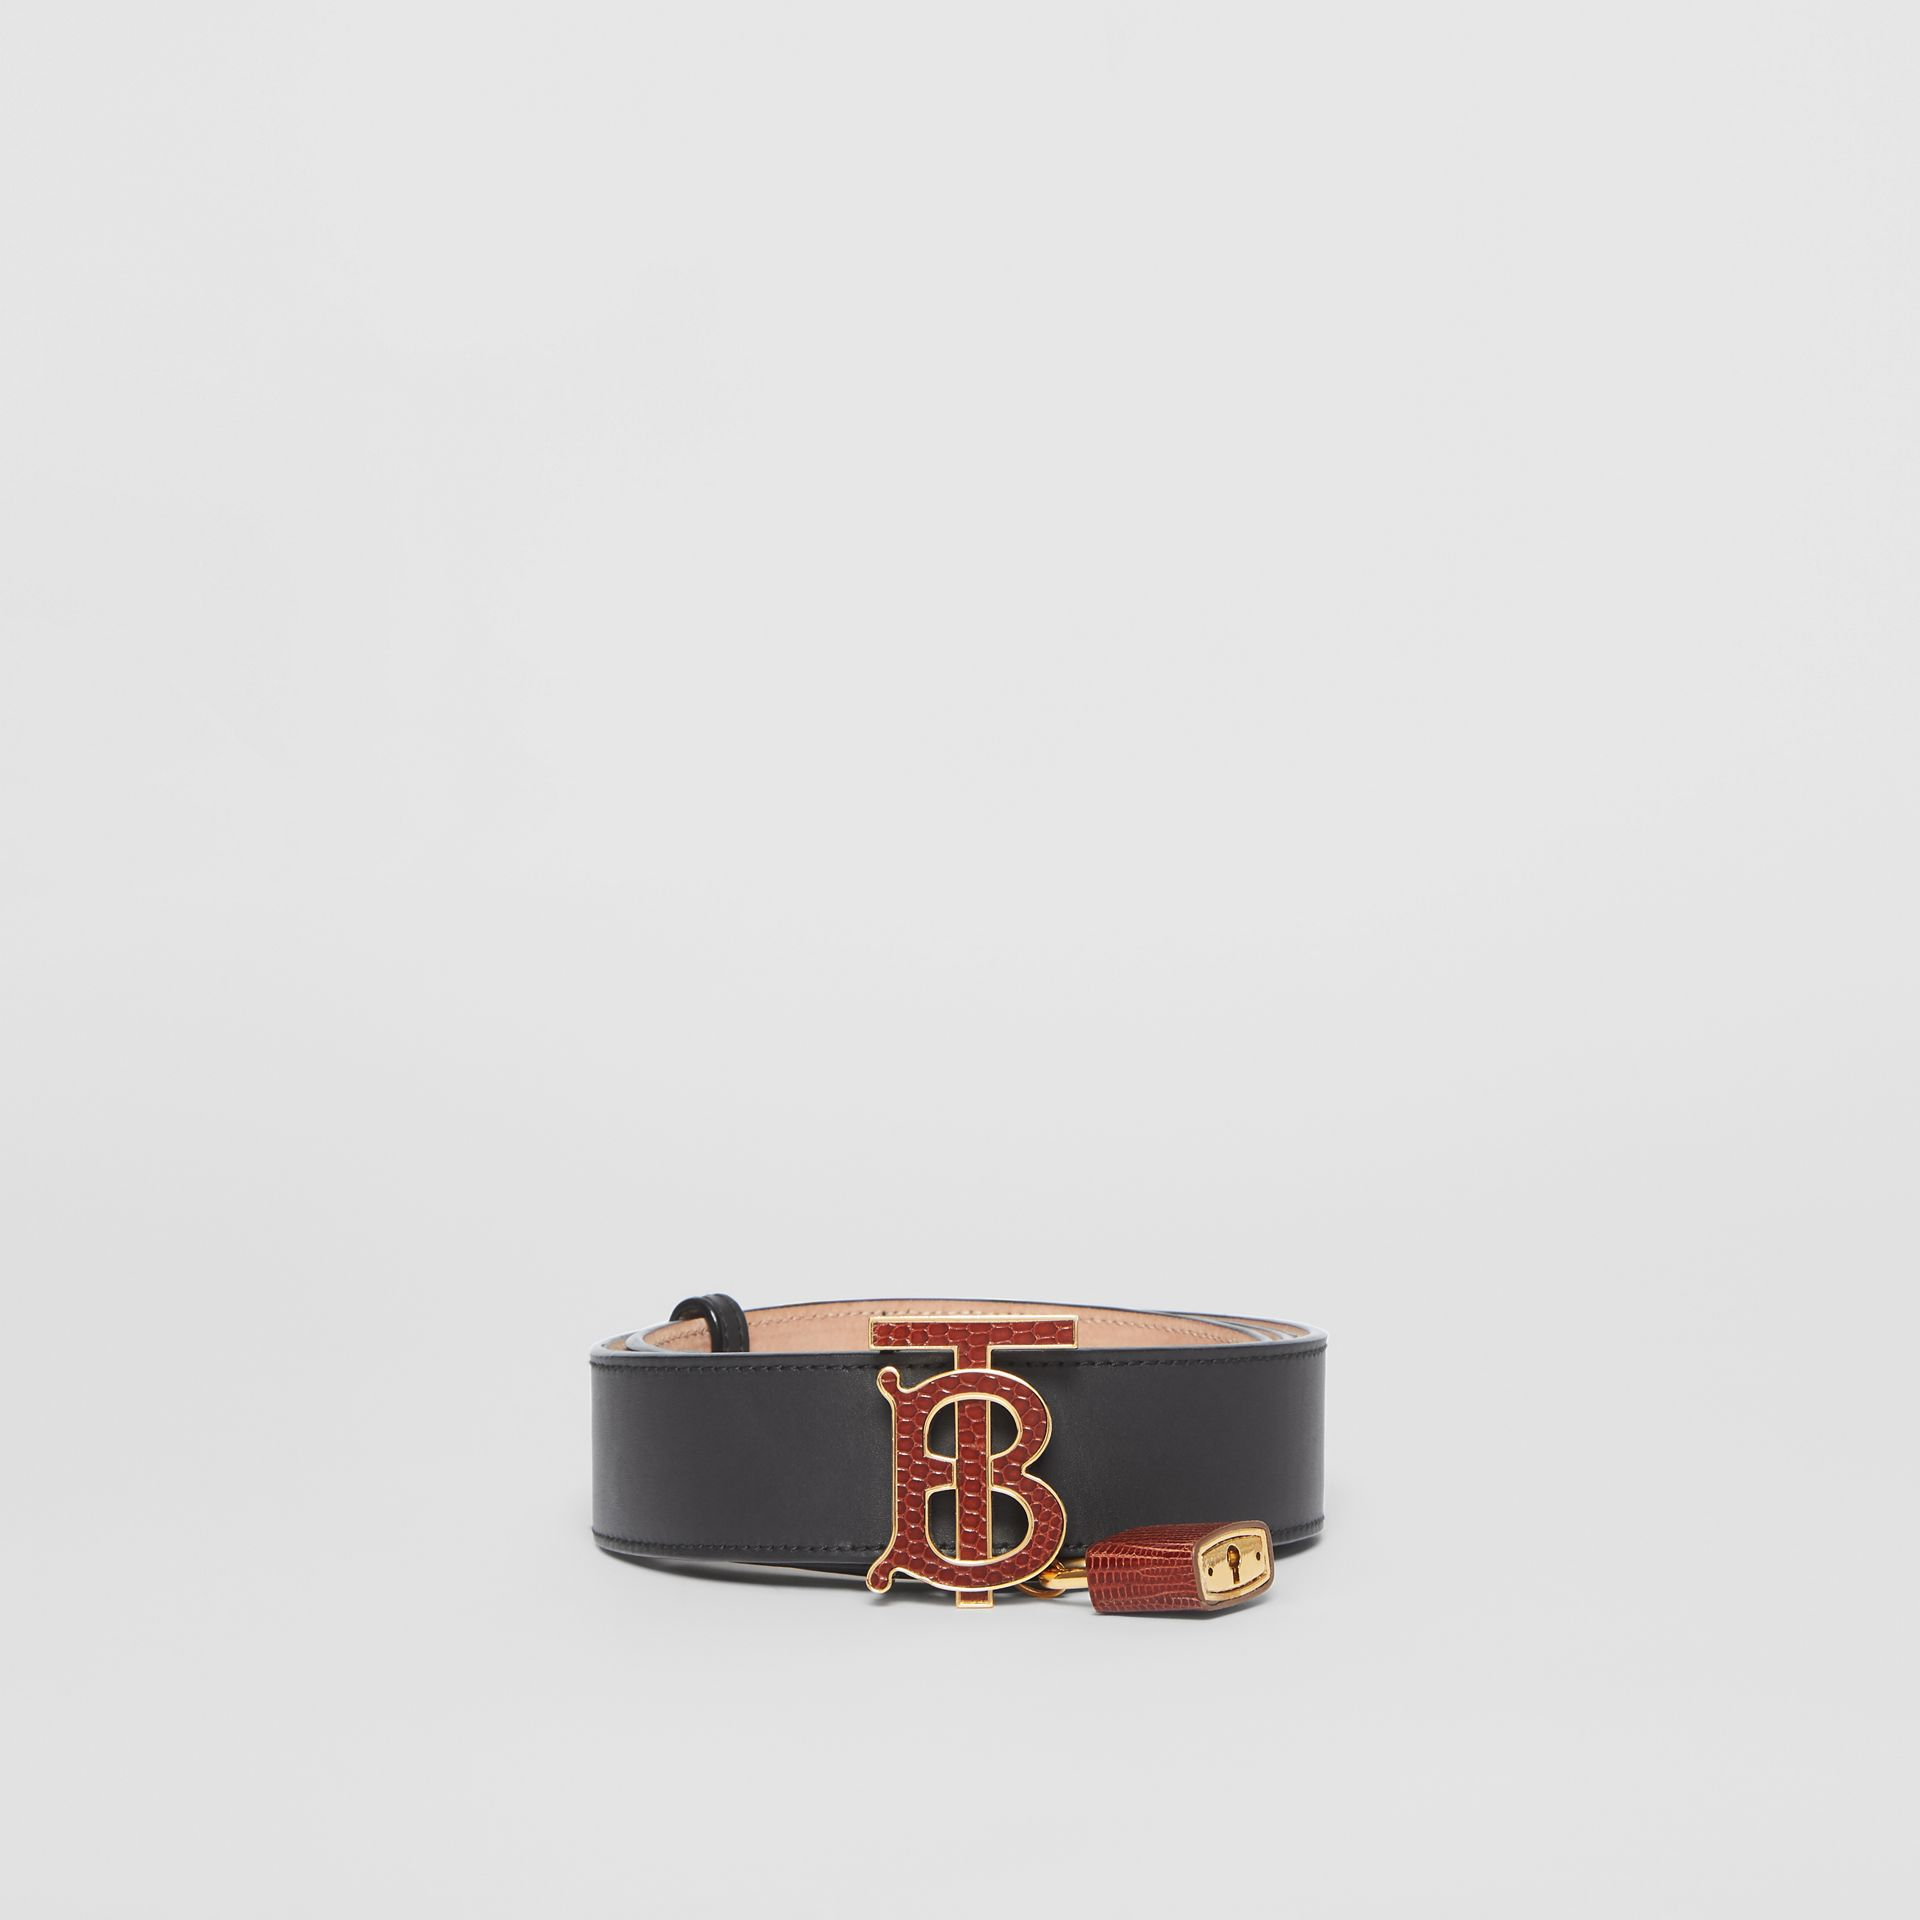 Padlock Detail Monogram Motif Leather Belt in Black/tan - Women | Burberry United States - gallery image 3